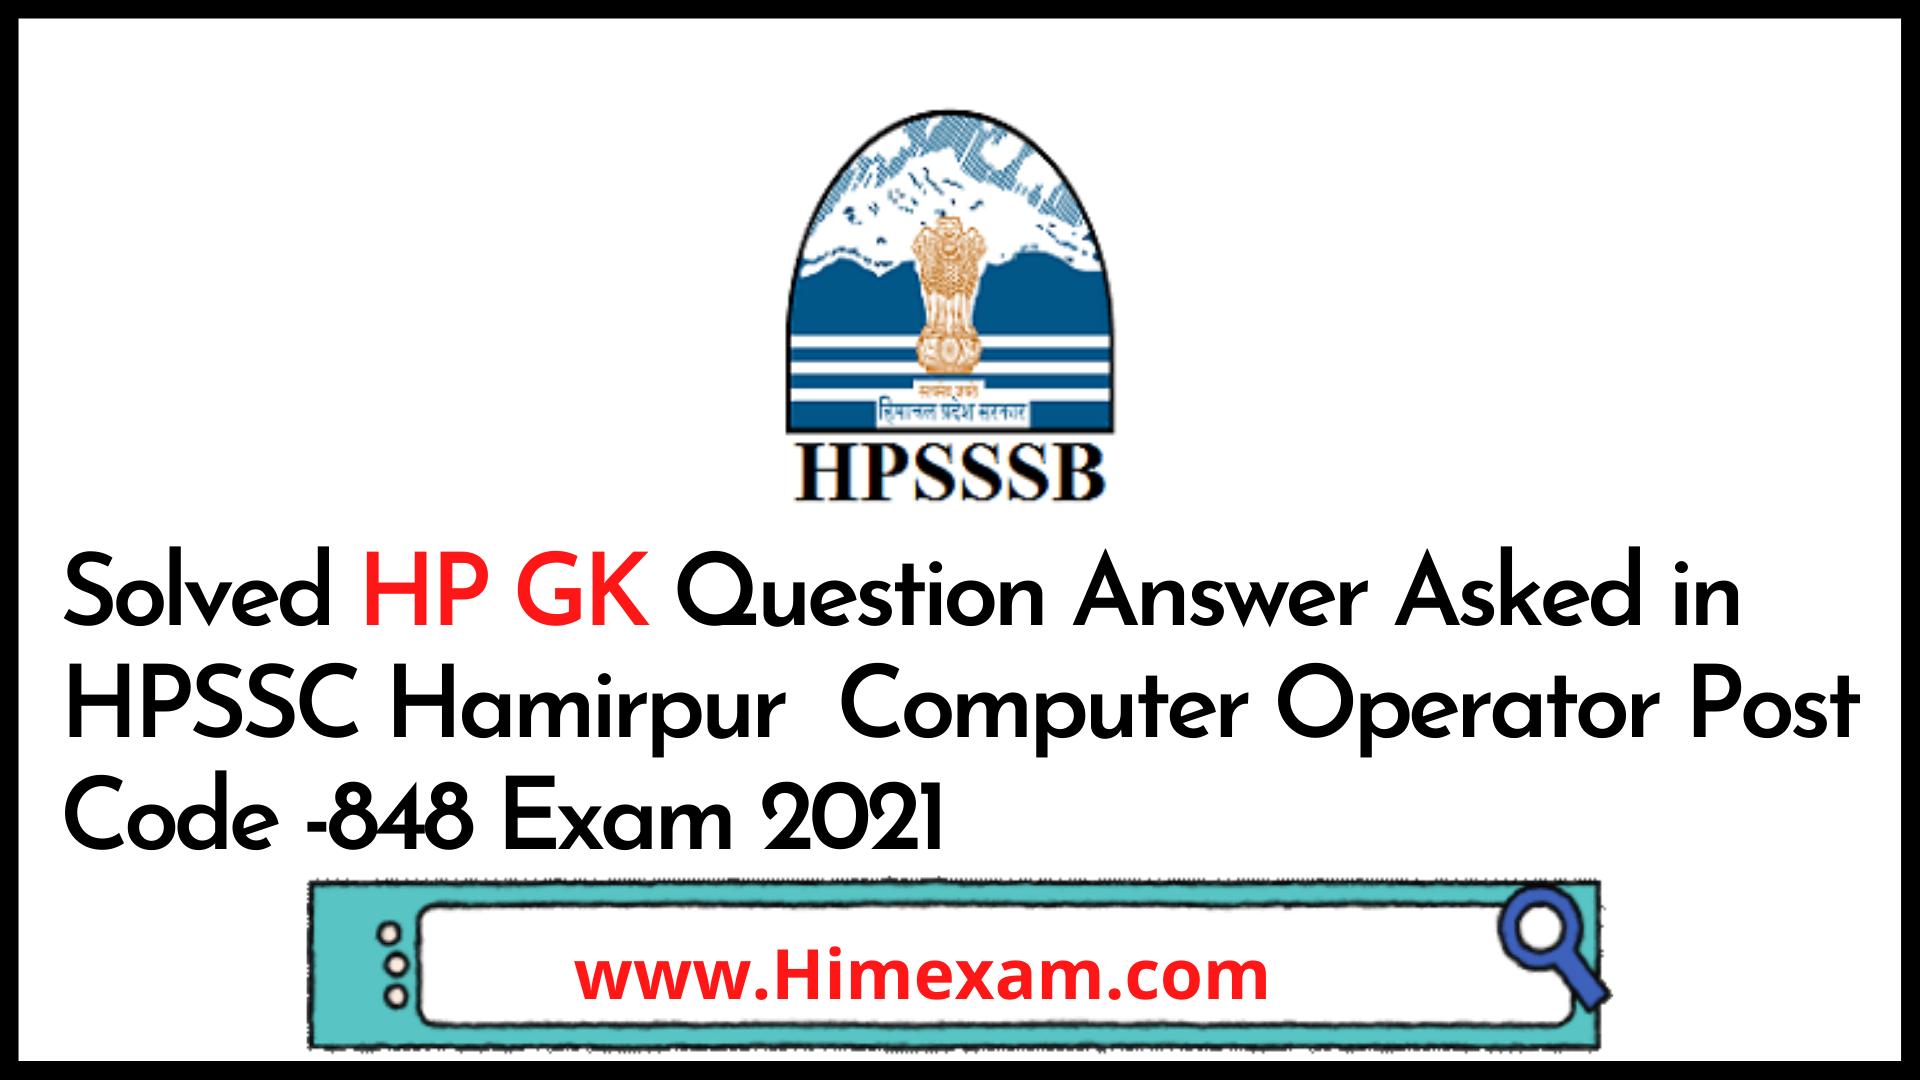 Solved HP GK Question Answer Asked in HPSSC Hamirpur  Computer Operator Post Code -848 Exam 2021